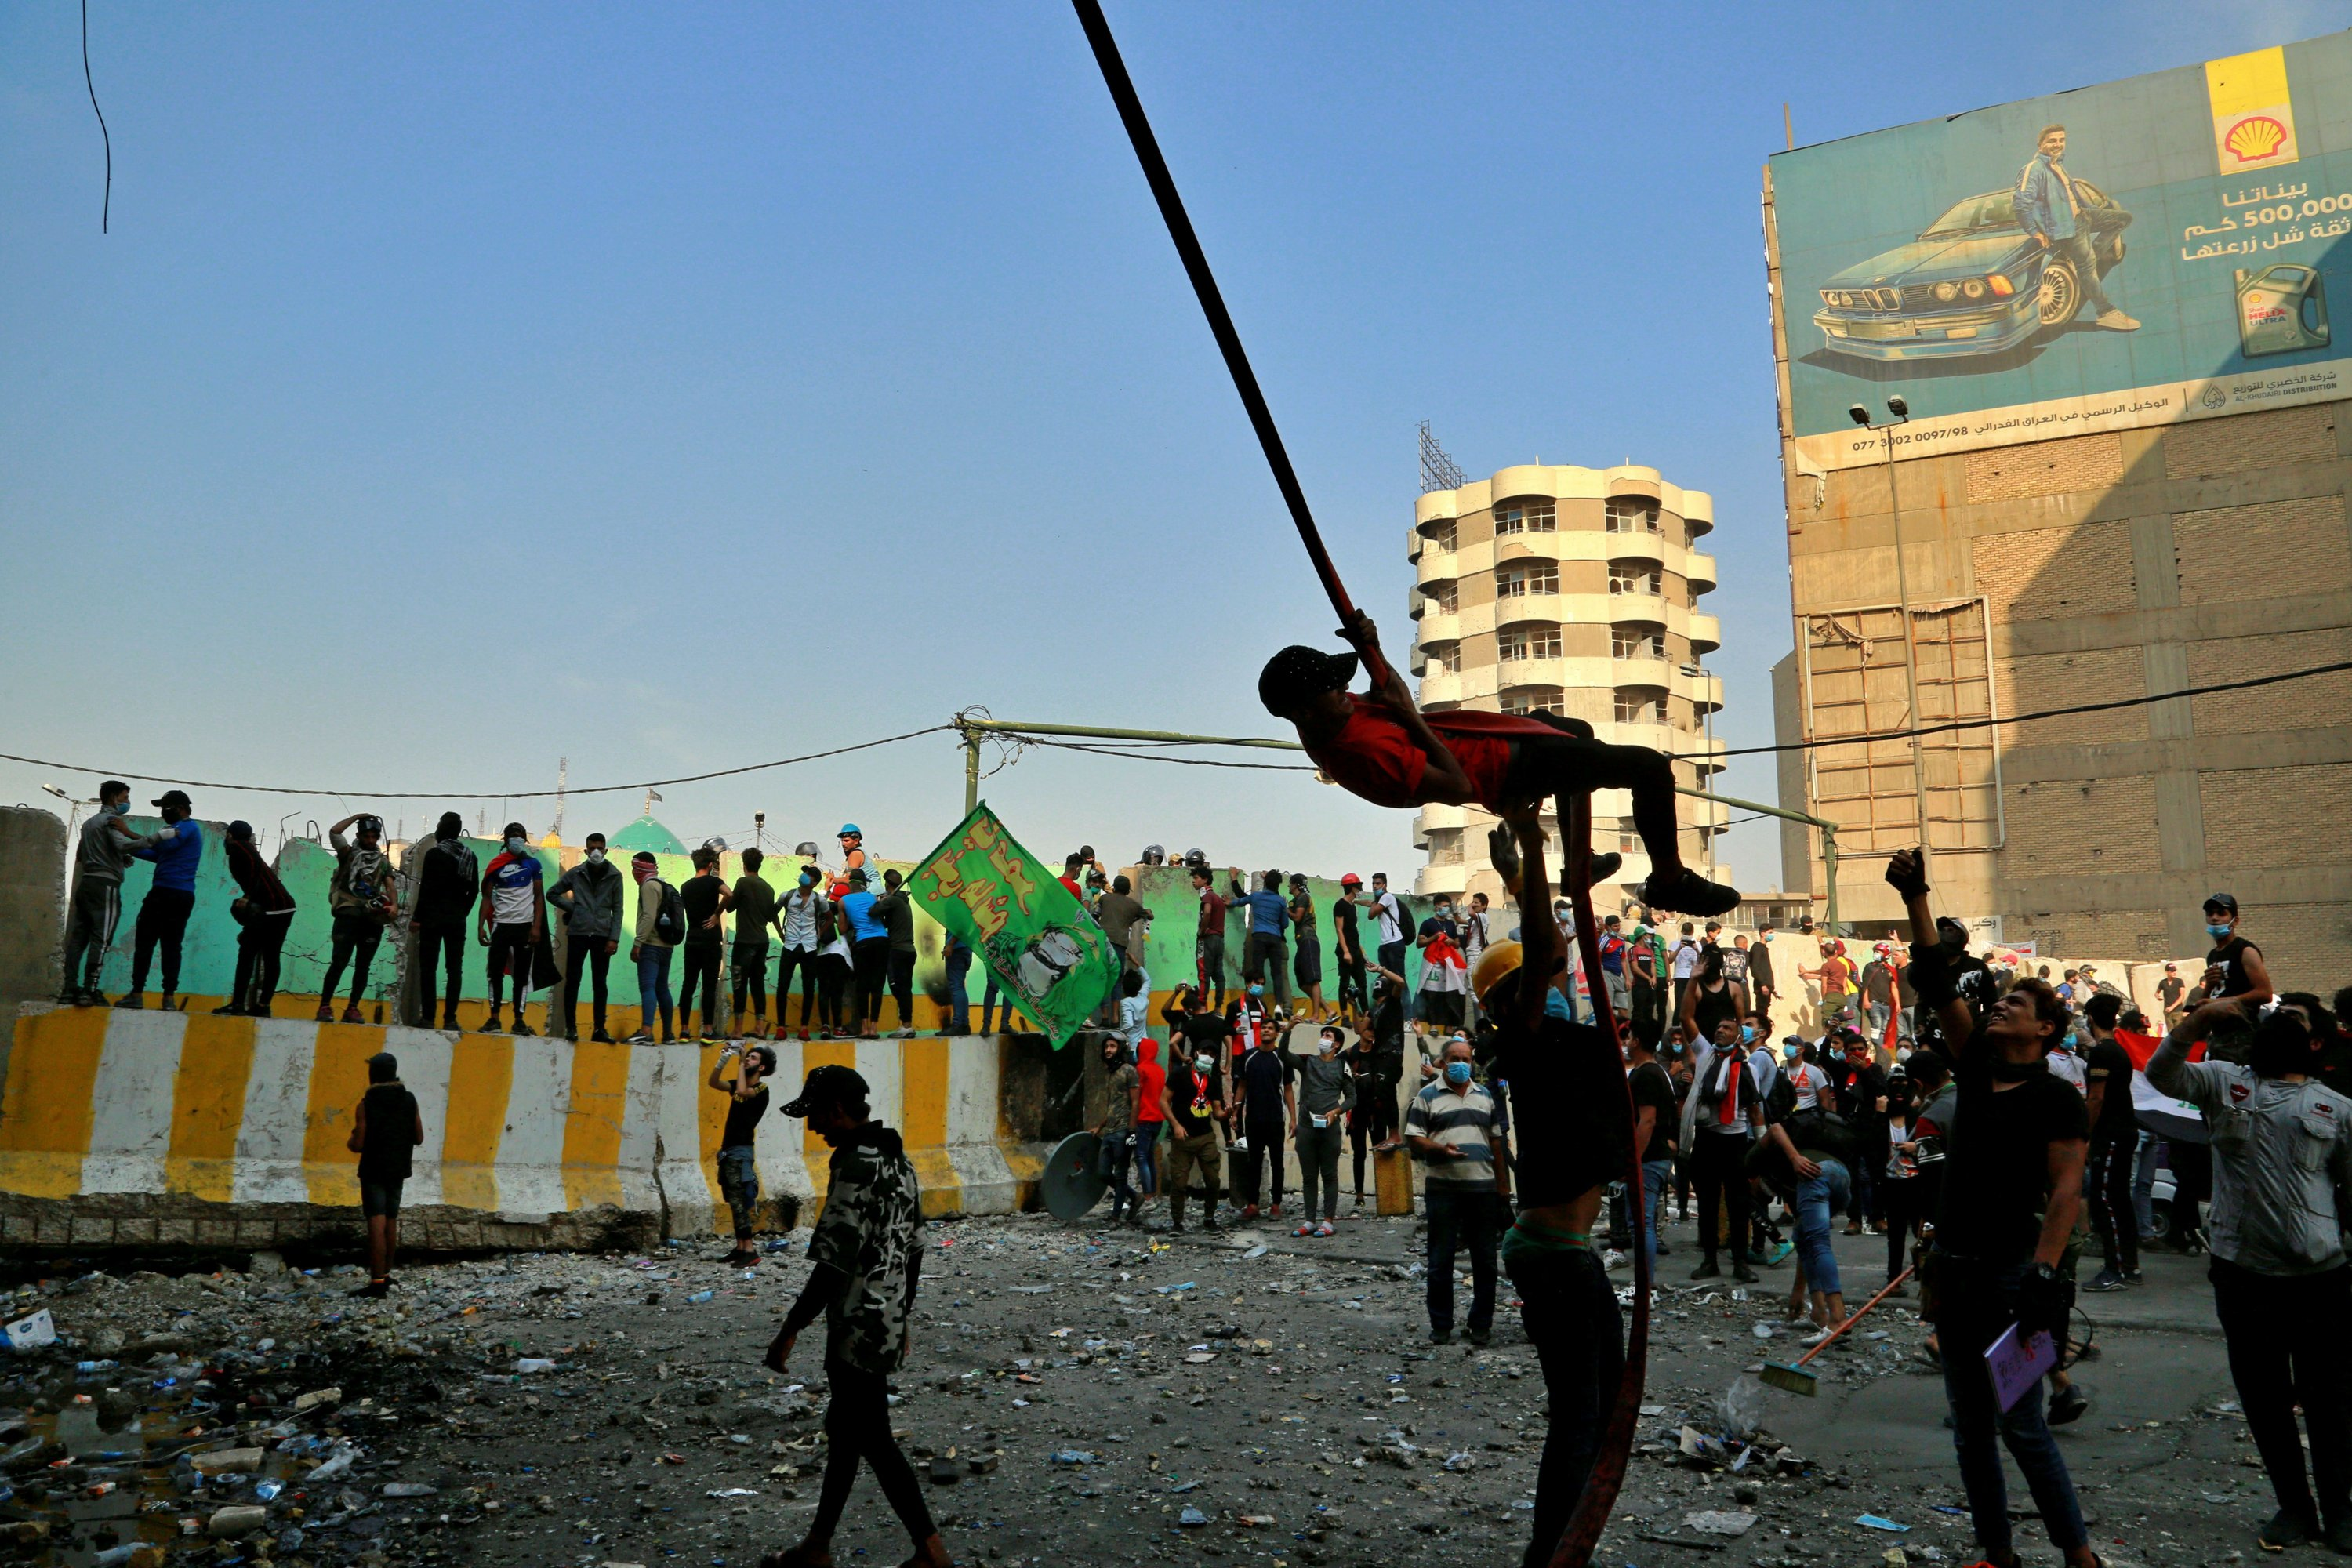 Iraqi protesters defiant in face of deadly crackdown